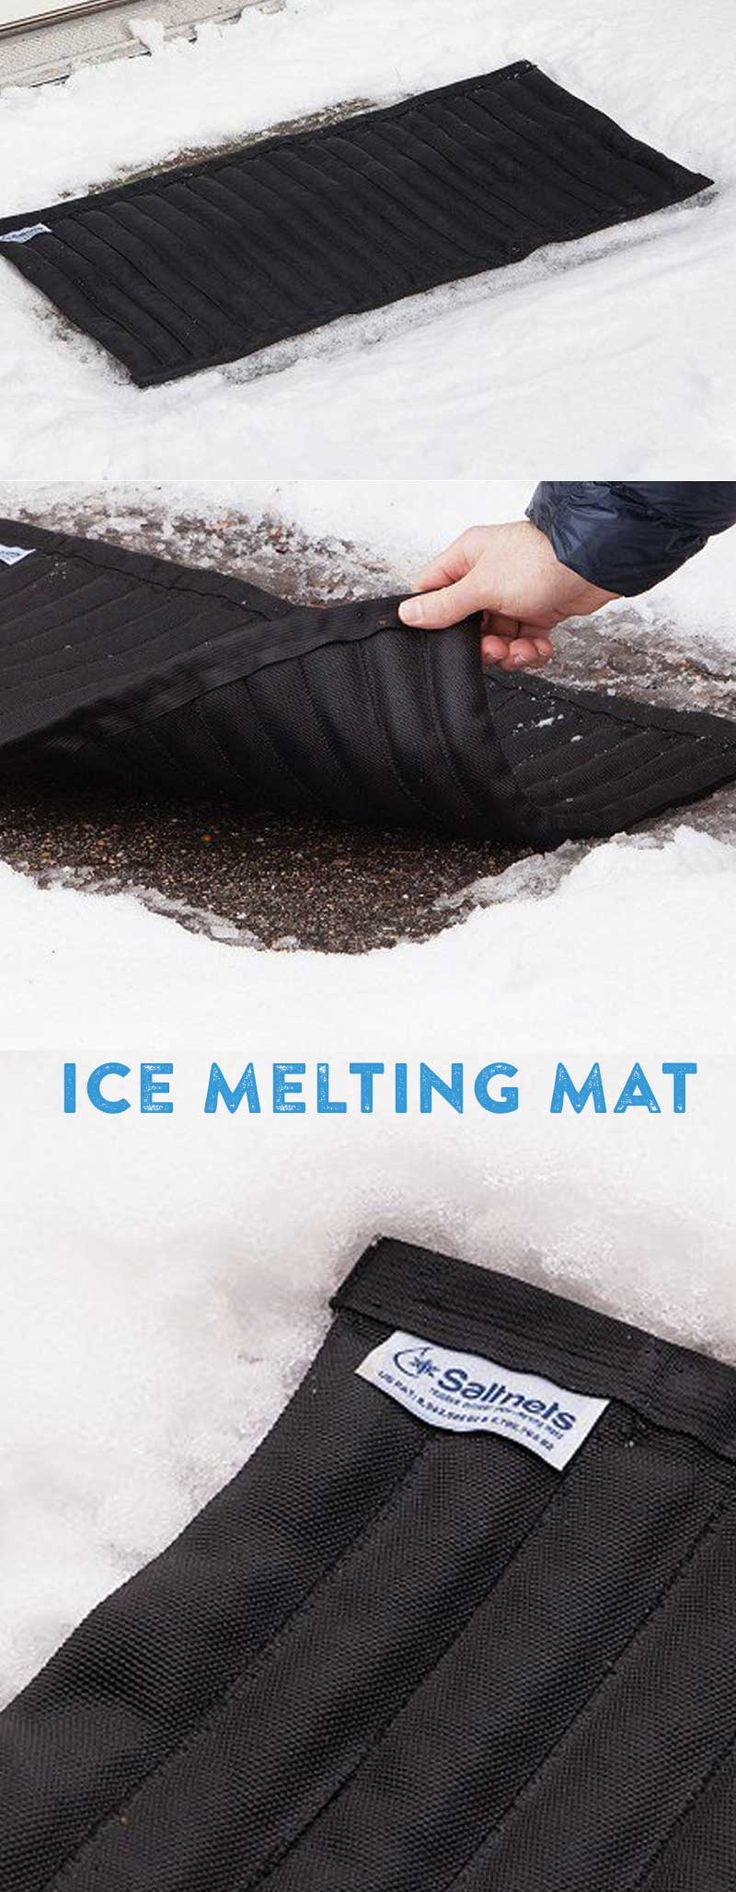 20 Best Emergency Essentials Images On Pinterest Electrical Rough In Wiring Of Earthship Tire Walls Pictures To Pin These Mats Work Just Like Rock Salt Because Thats What Is Inside But